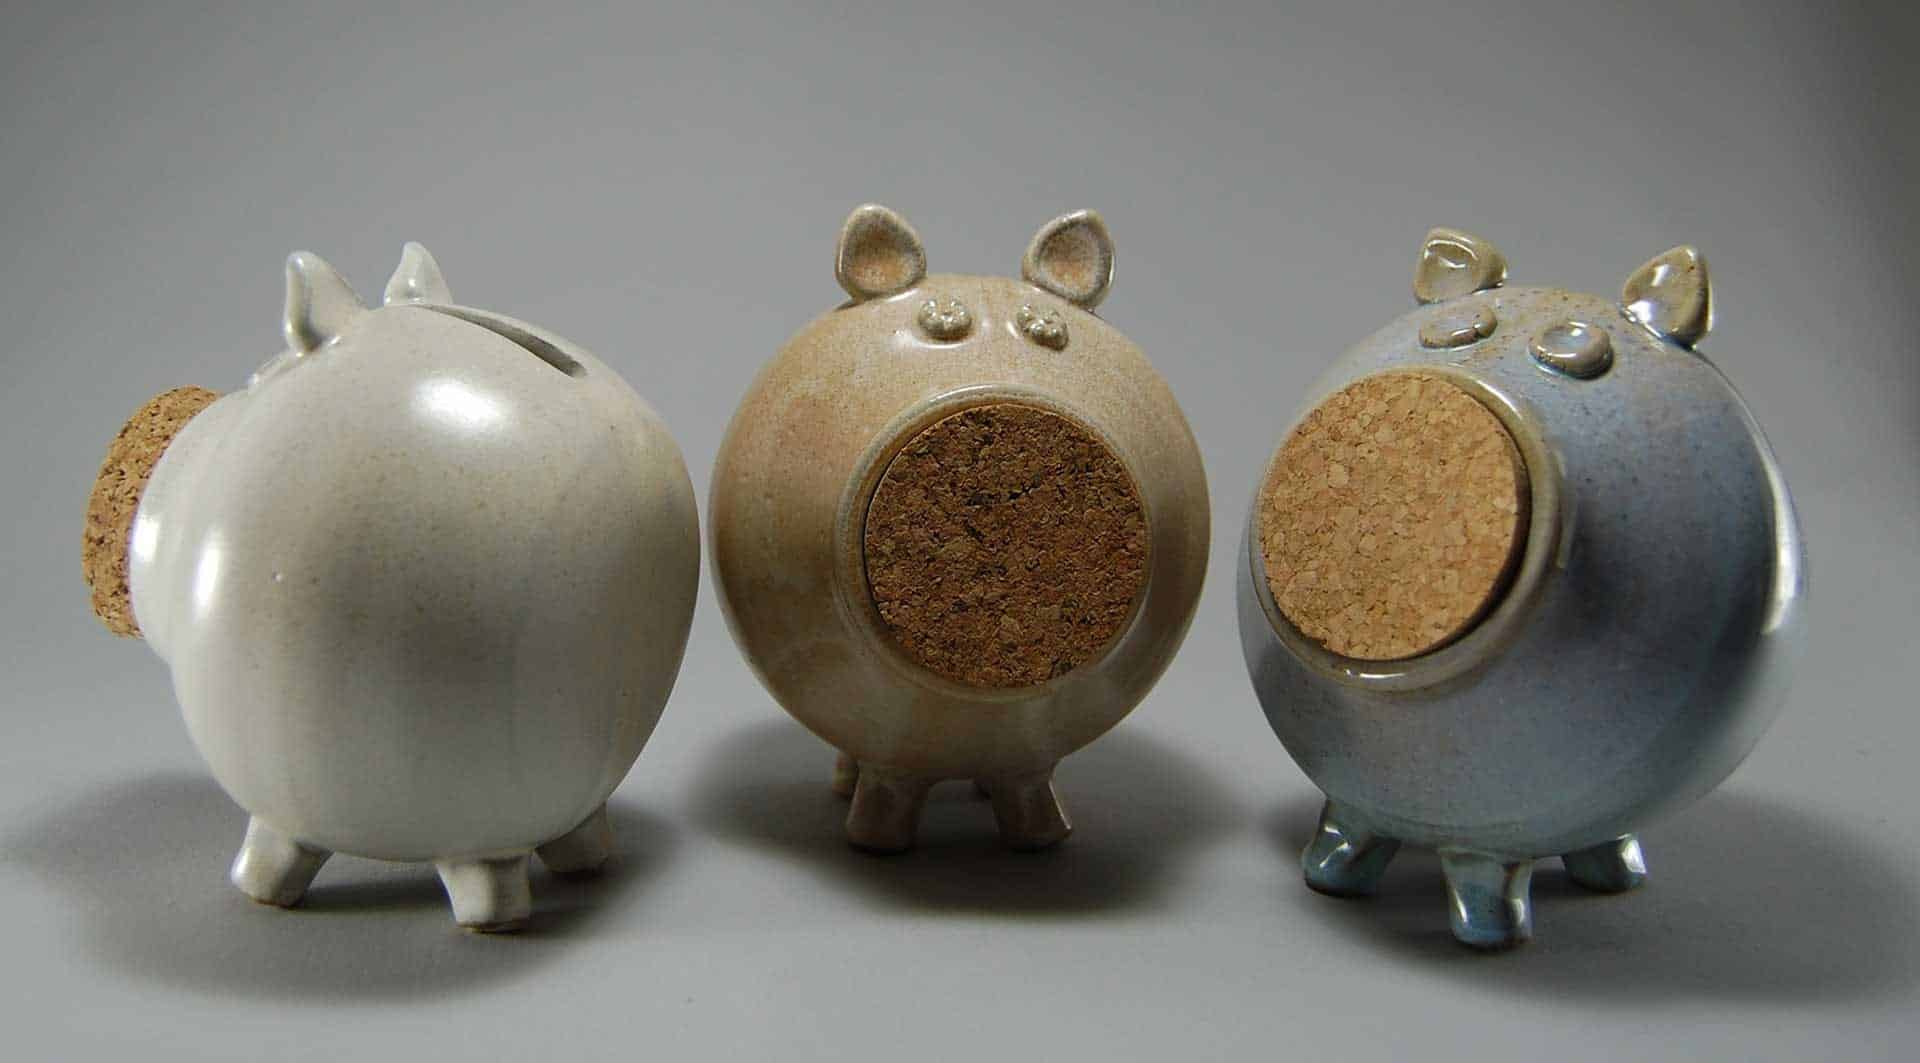 Piggybanks01_01 (Large)